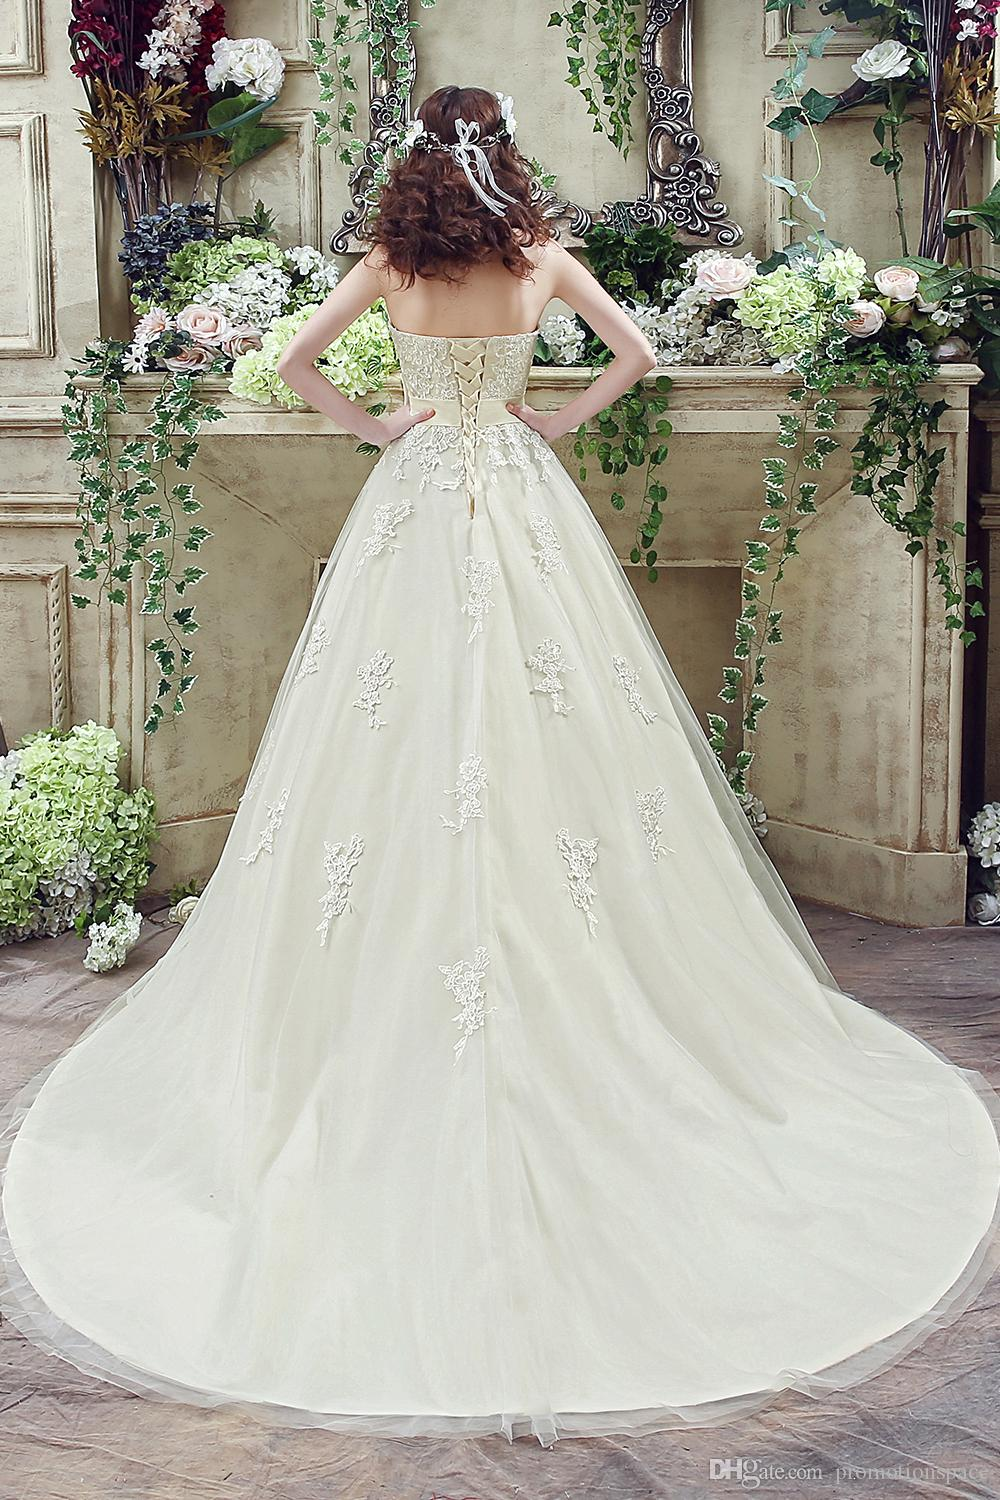 White Champagne Lace Wedding Dresses 2016 New Ball Gown Sweetheart Appliqued With Bow Sash Lace-up Back Floor Length Bridal Gowns CPS241